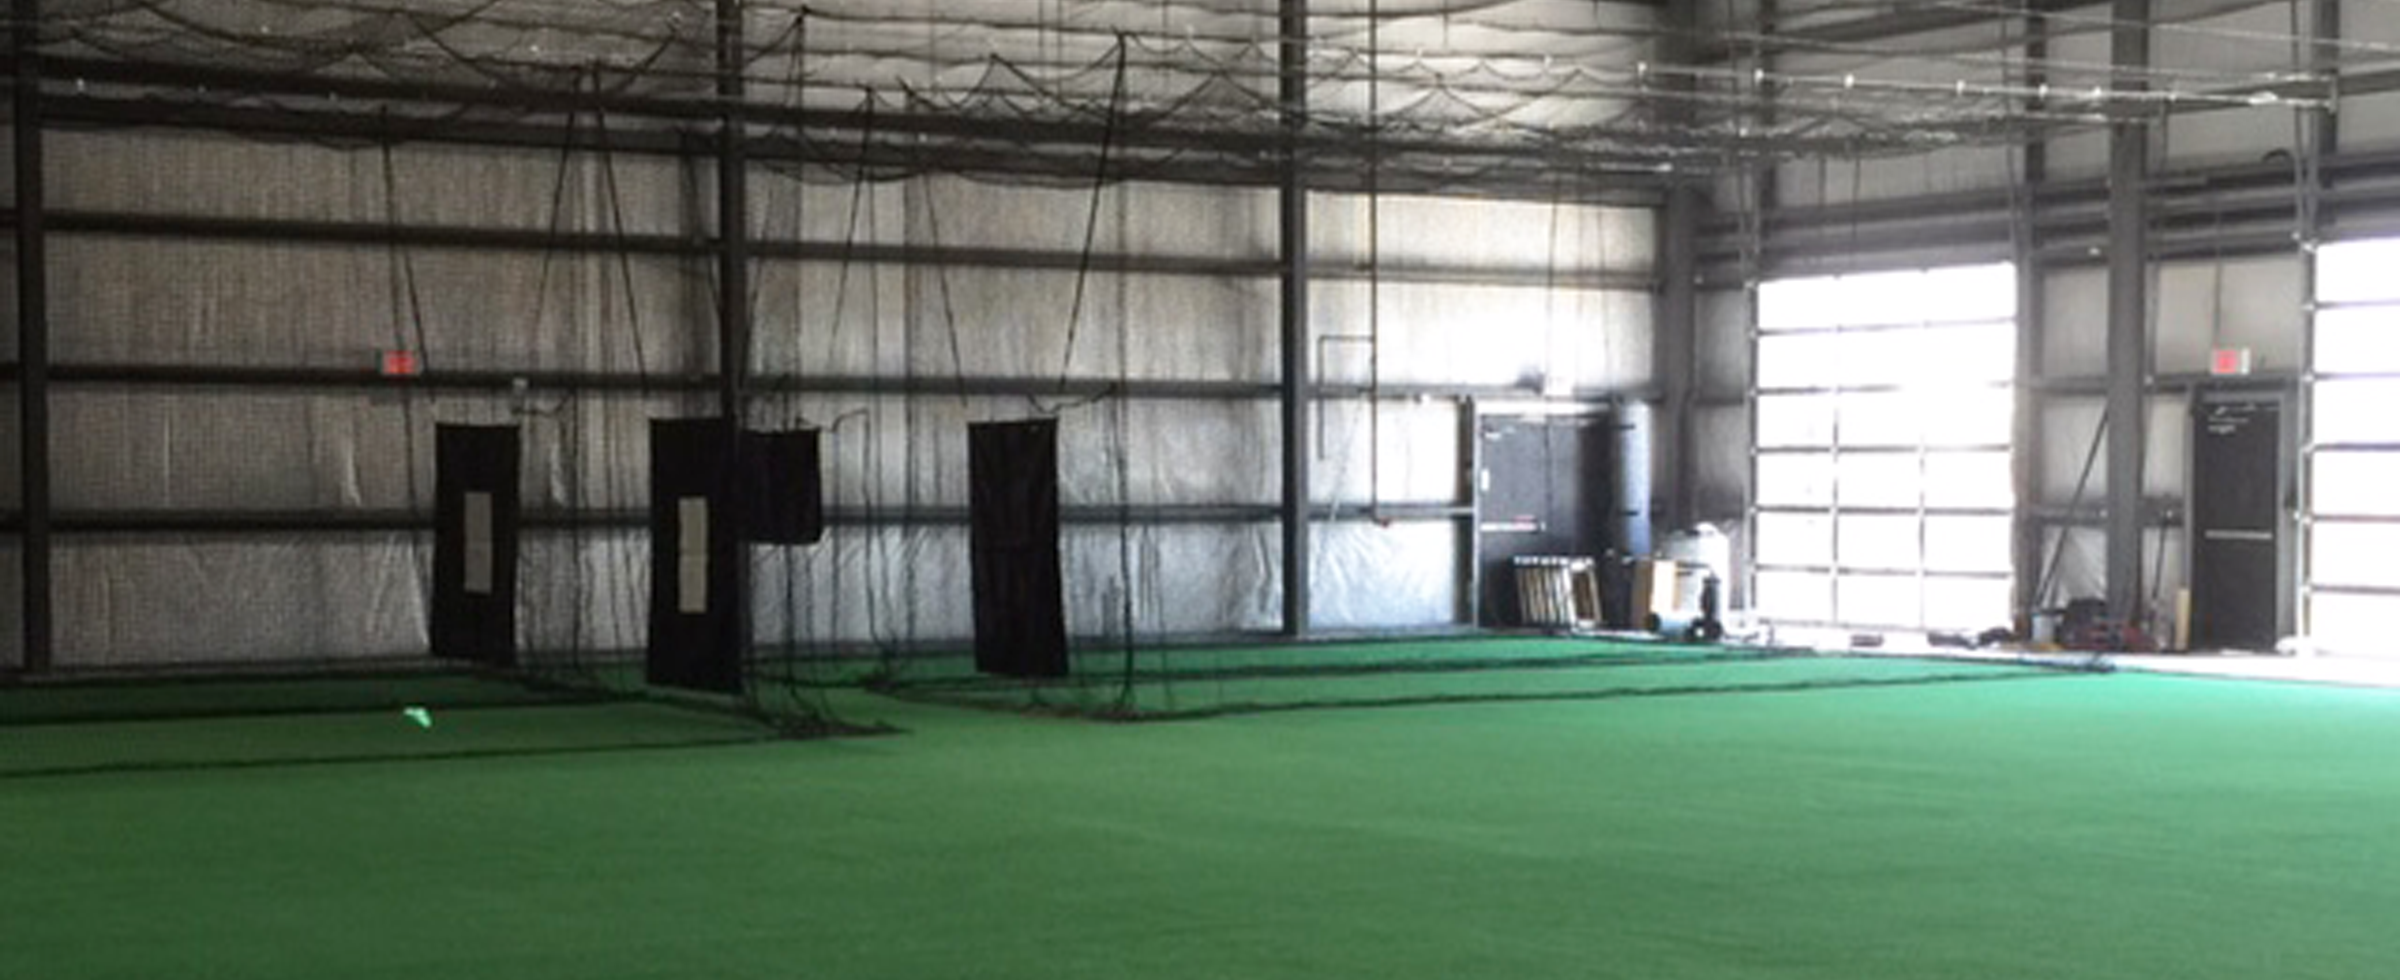 Indoor sports facility portfolio on deck sports blog for Design indoor baseball facility